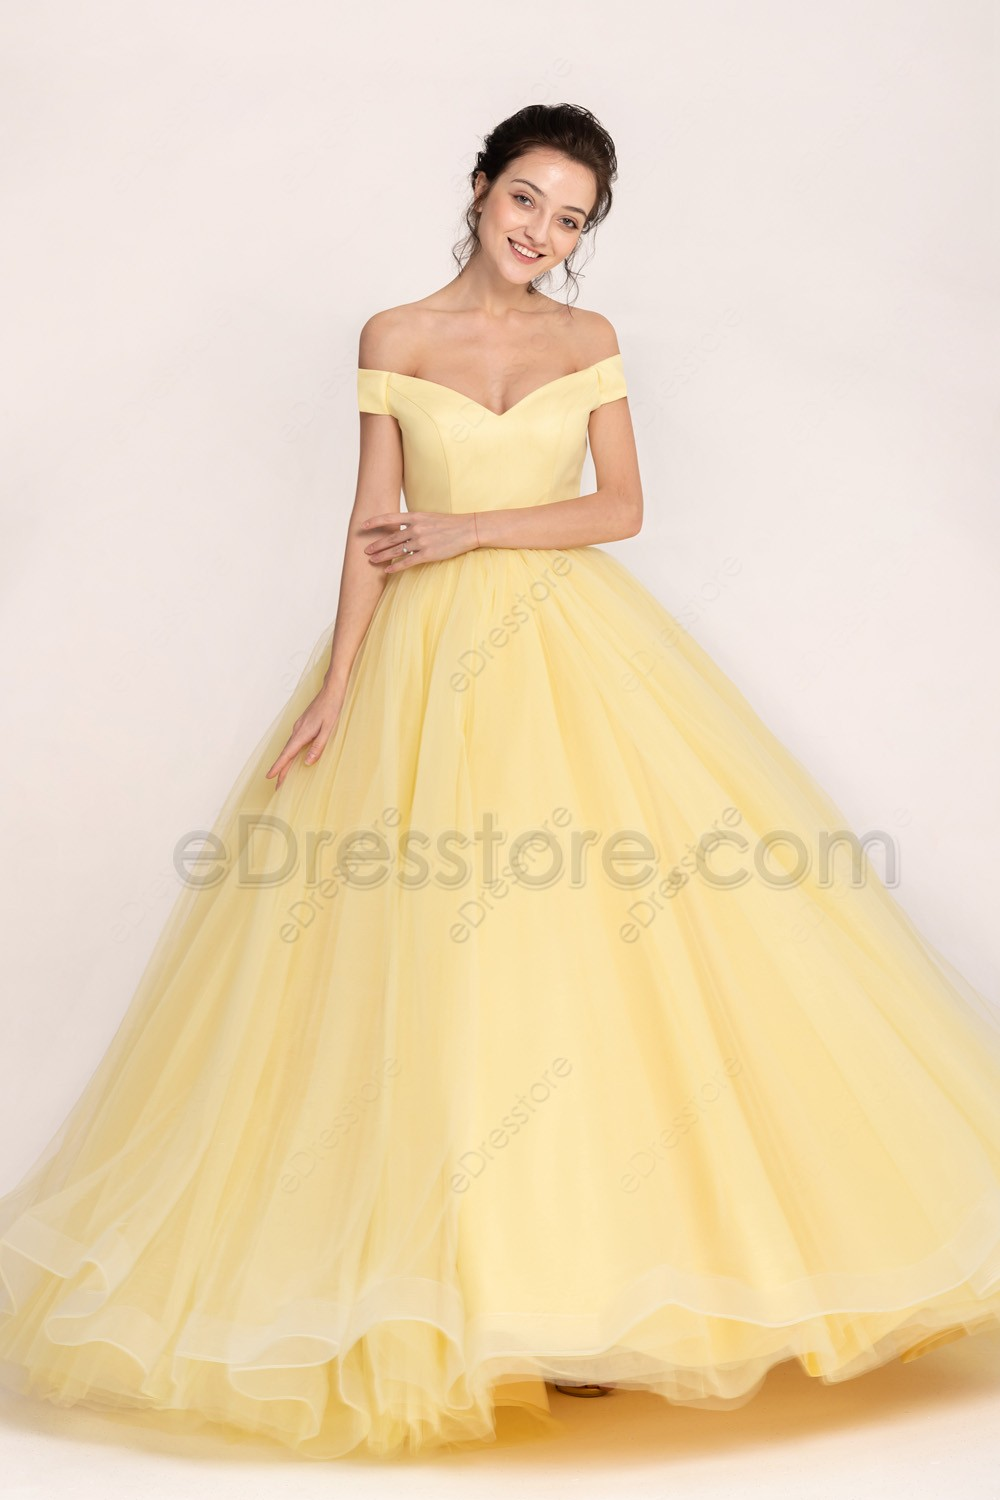 Yellow Ball Gown Princess Vintage Prom Dresses Long